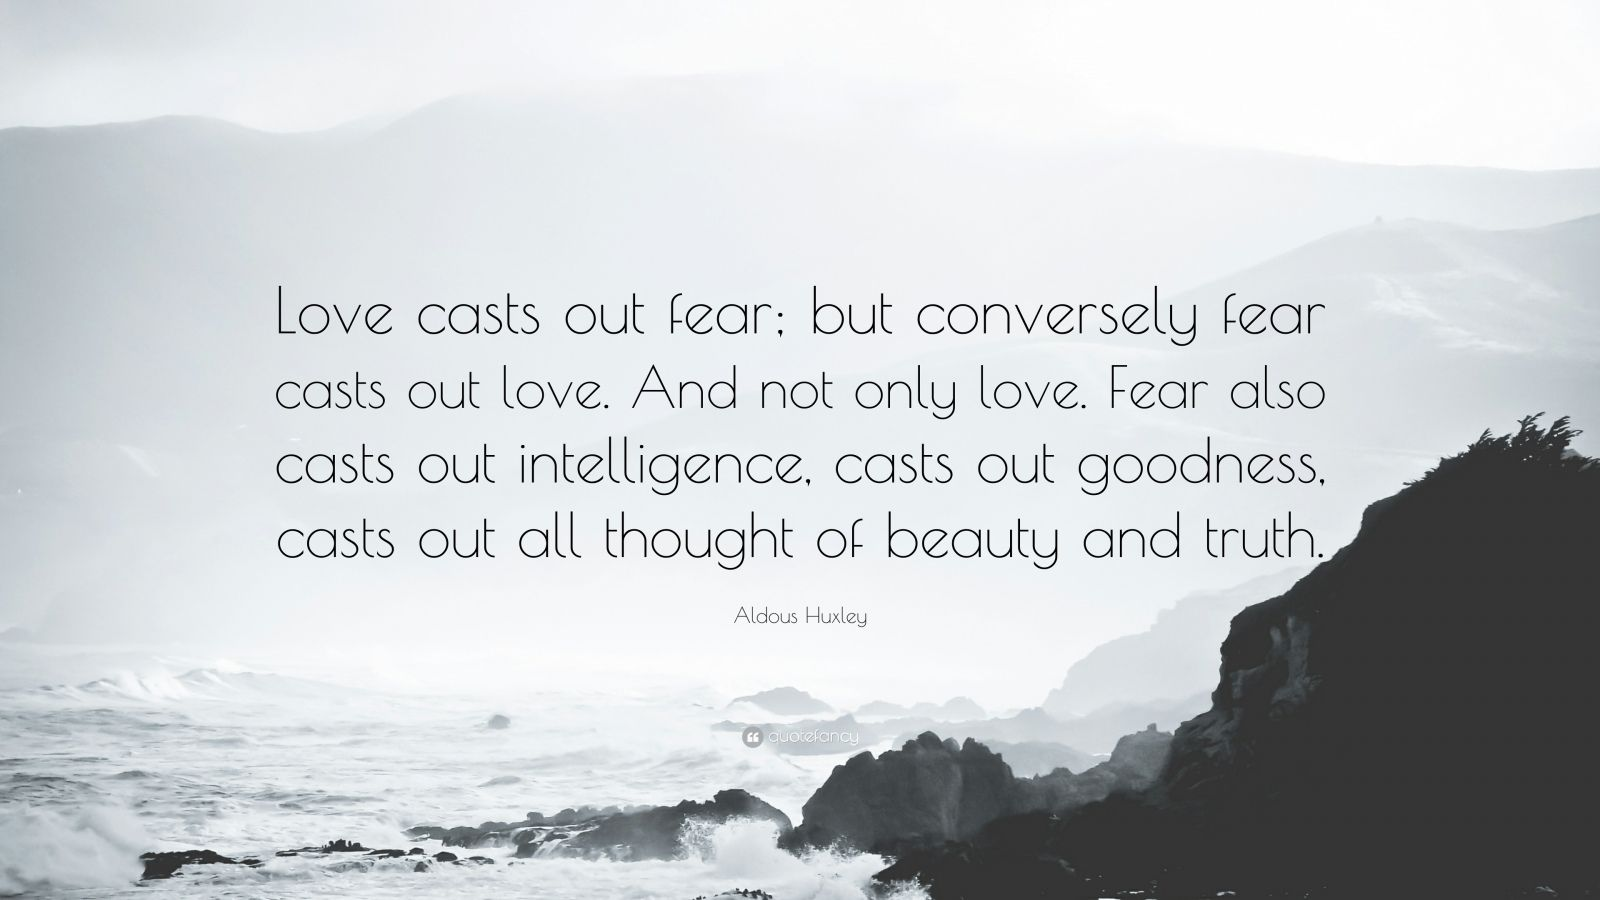 """Aldous Huxley Quote: """"Love casts out fear; but conversely fear casts out love. And not only love. Fear also casts out intelligence, casts out goodness, casts out all thought of beauty and truth."""""""